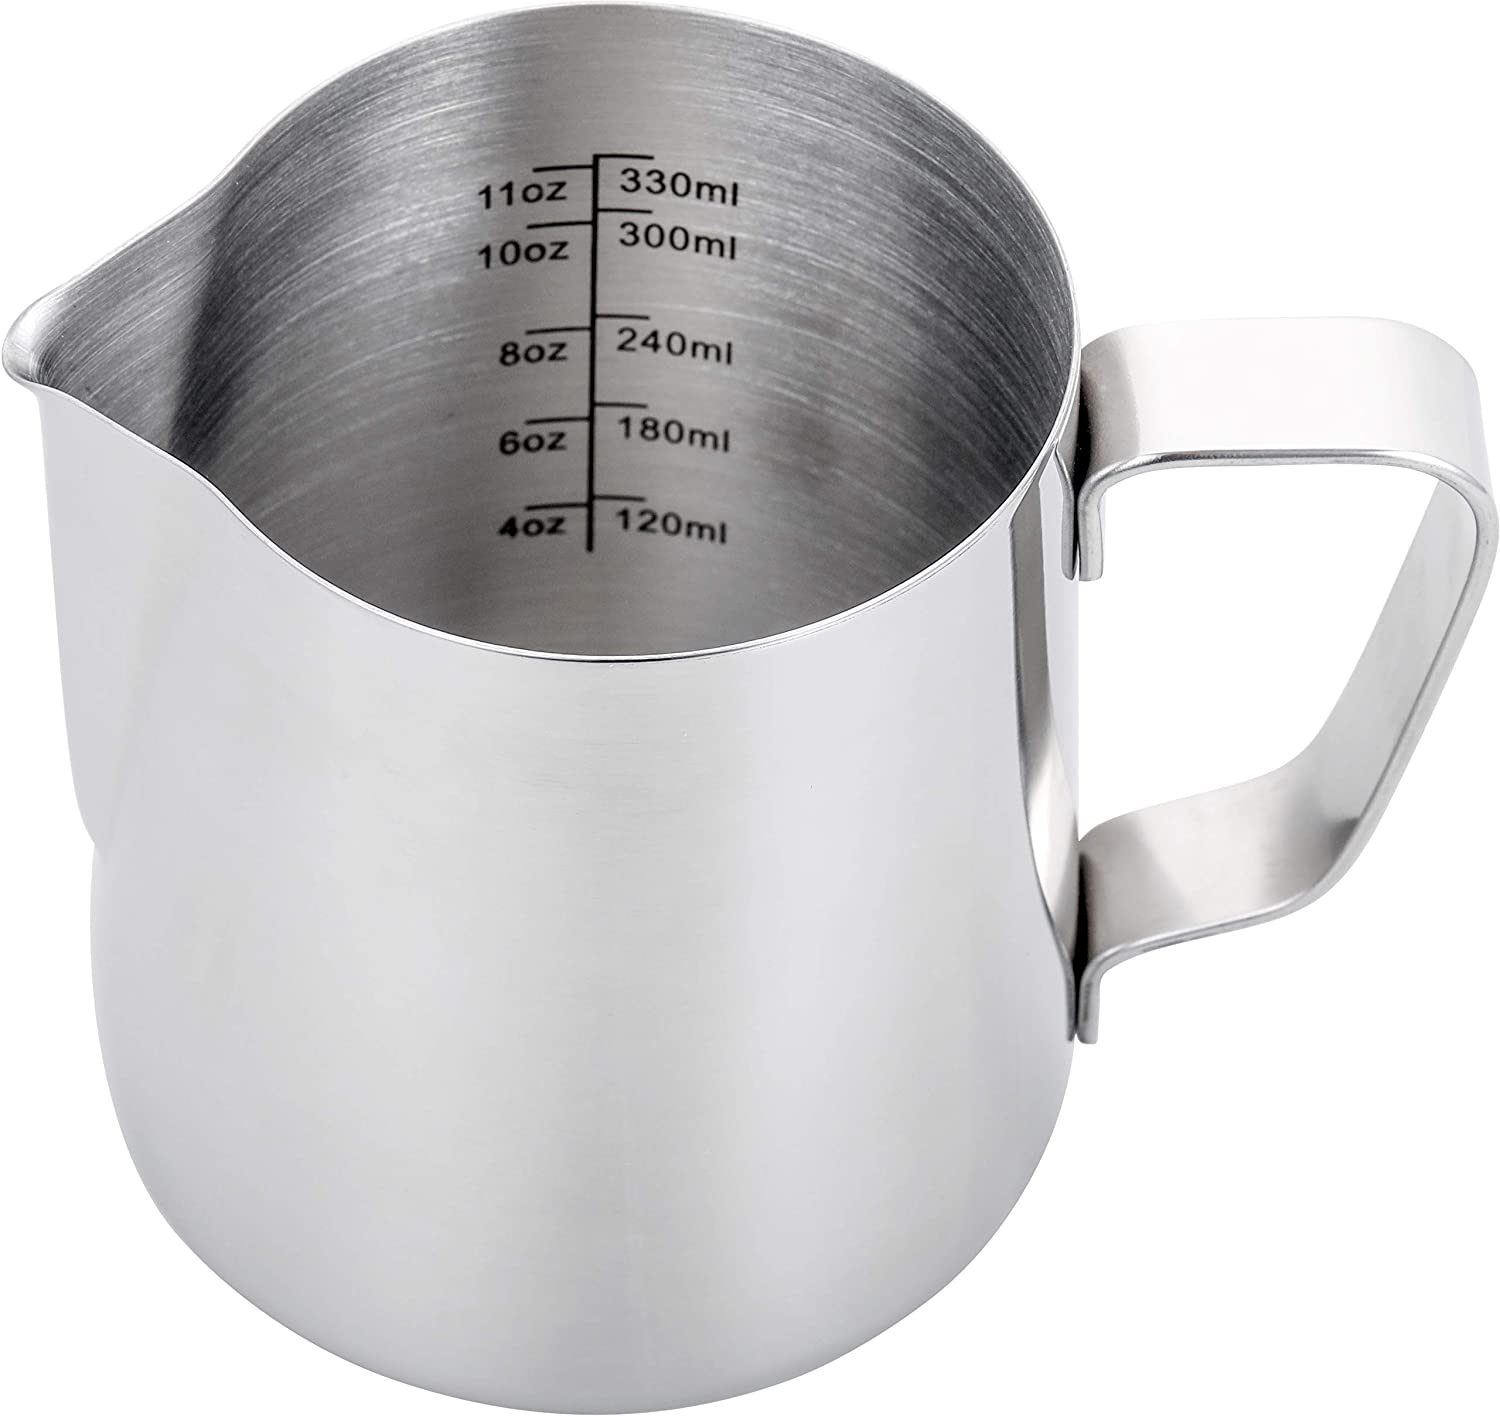 Espresso Steaming Pitcher 12 oz,Espresso Milk Frothing Pitcher 12 oz,Coffee Milk Frothing Cup,Coffee Steaming Pitcher 12 oz/350 ml